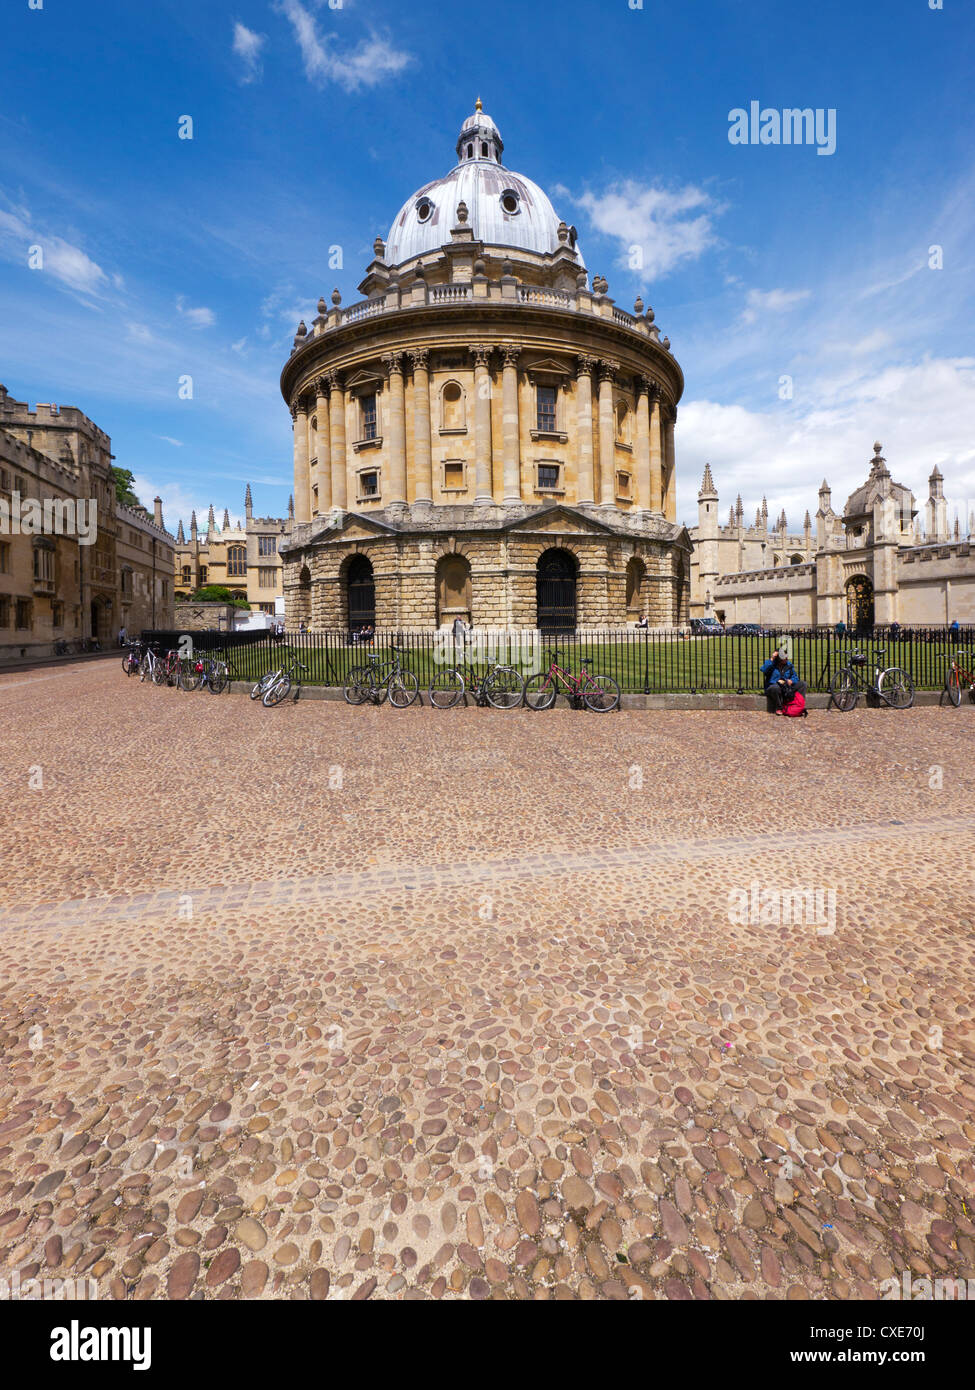 Radcliffe Camera, Oxford, Oxfordshire, England, UK - Stock Image